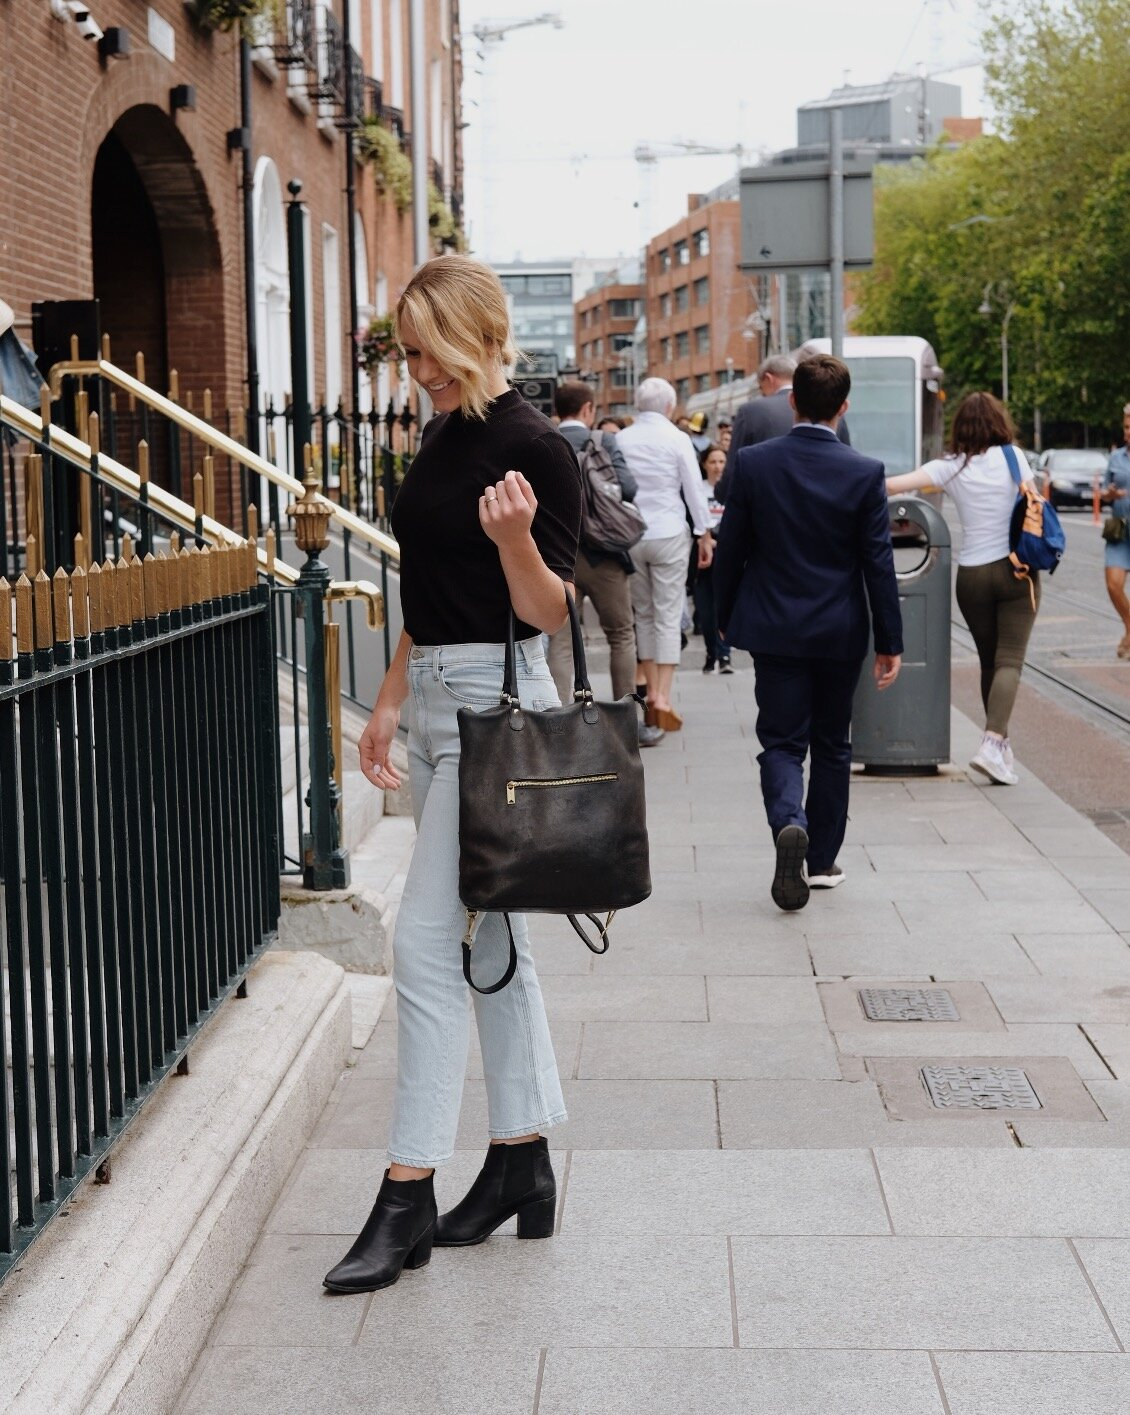 Minimalist travel outfit ideas // A Week Of Minimalist Travel Outfits With Ellie Hughes From Selflessly Styled on The Good Trade